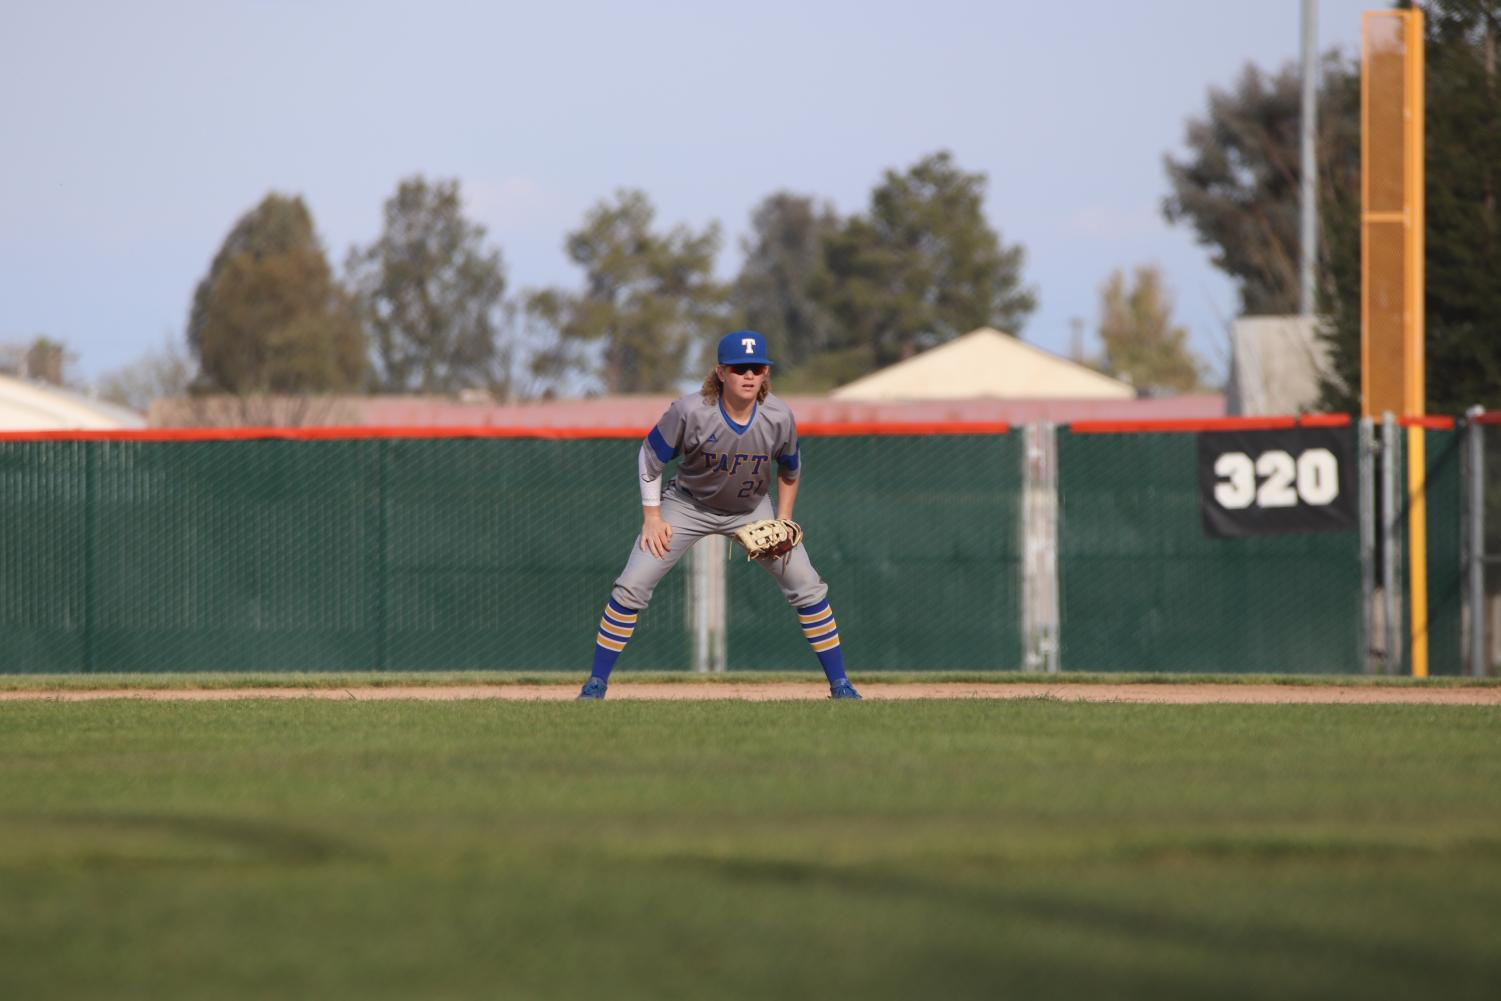 Corbin Yaws waiting to catch a ground ball.